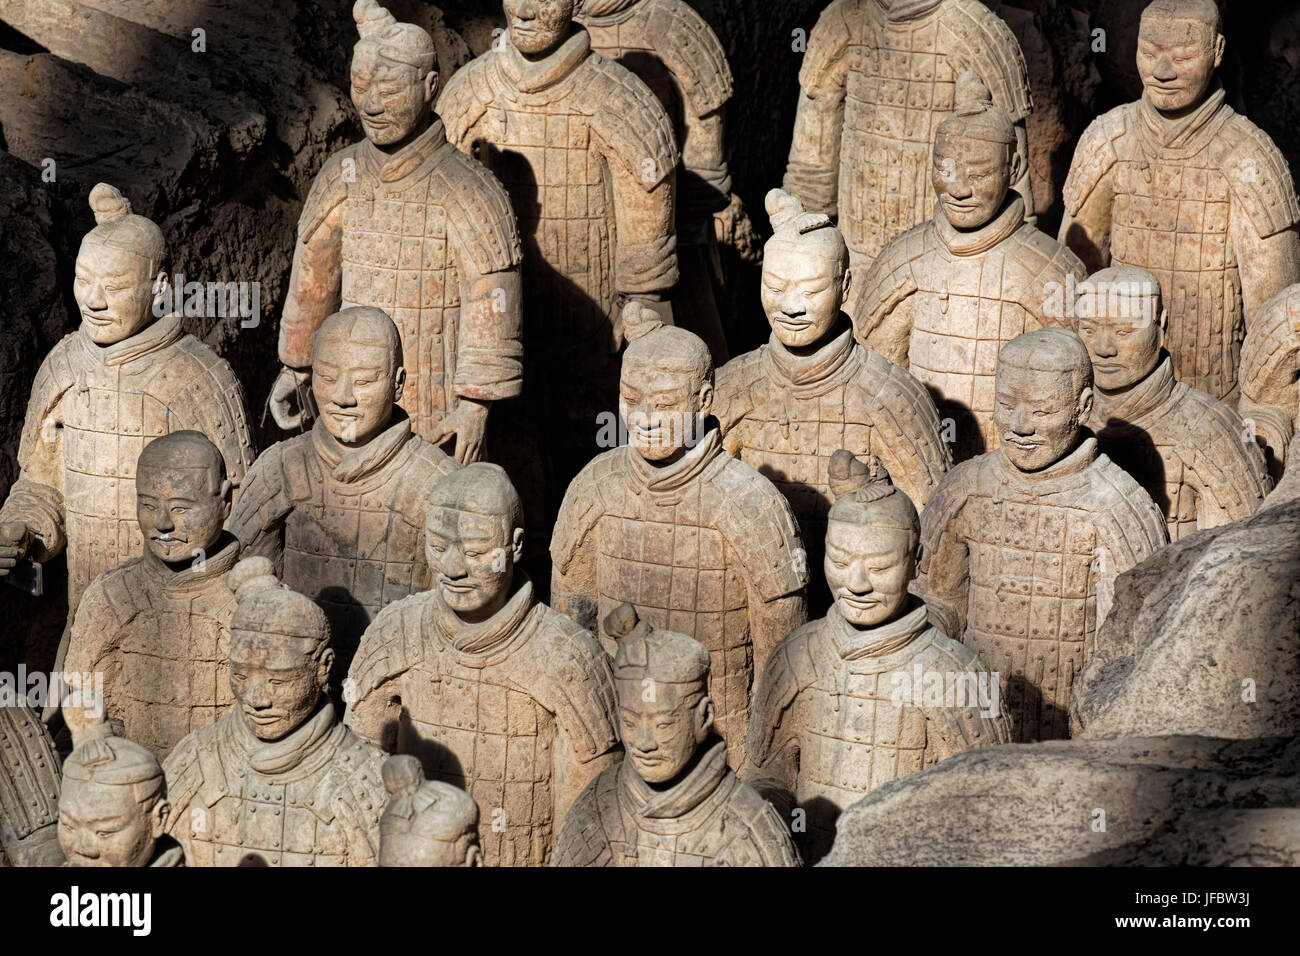 The world famous Terracotta Army, part of the Mausoleum of the First Qin Emperor and a UNESCO World Heritage Site - Stock Image